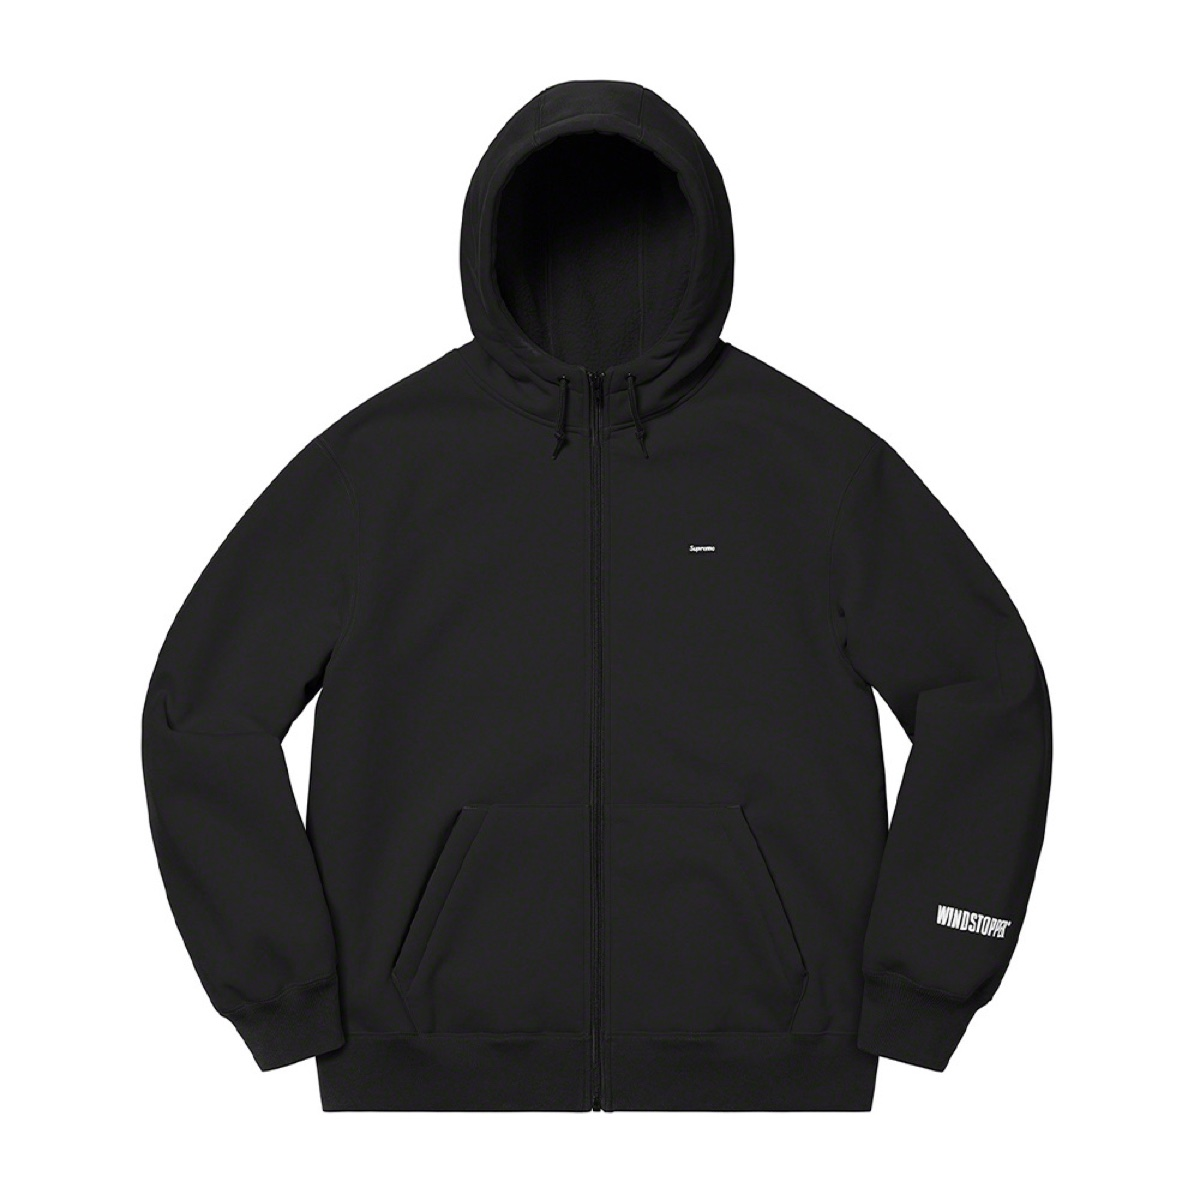 Supreme Windstopper Zip Up Hooded Sweatshirt Black